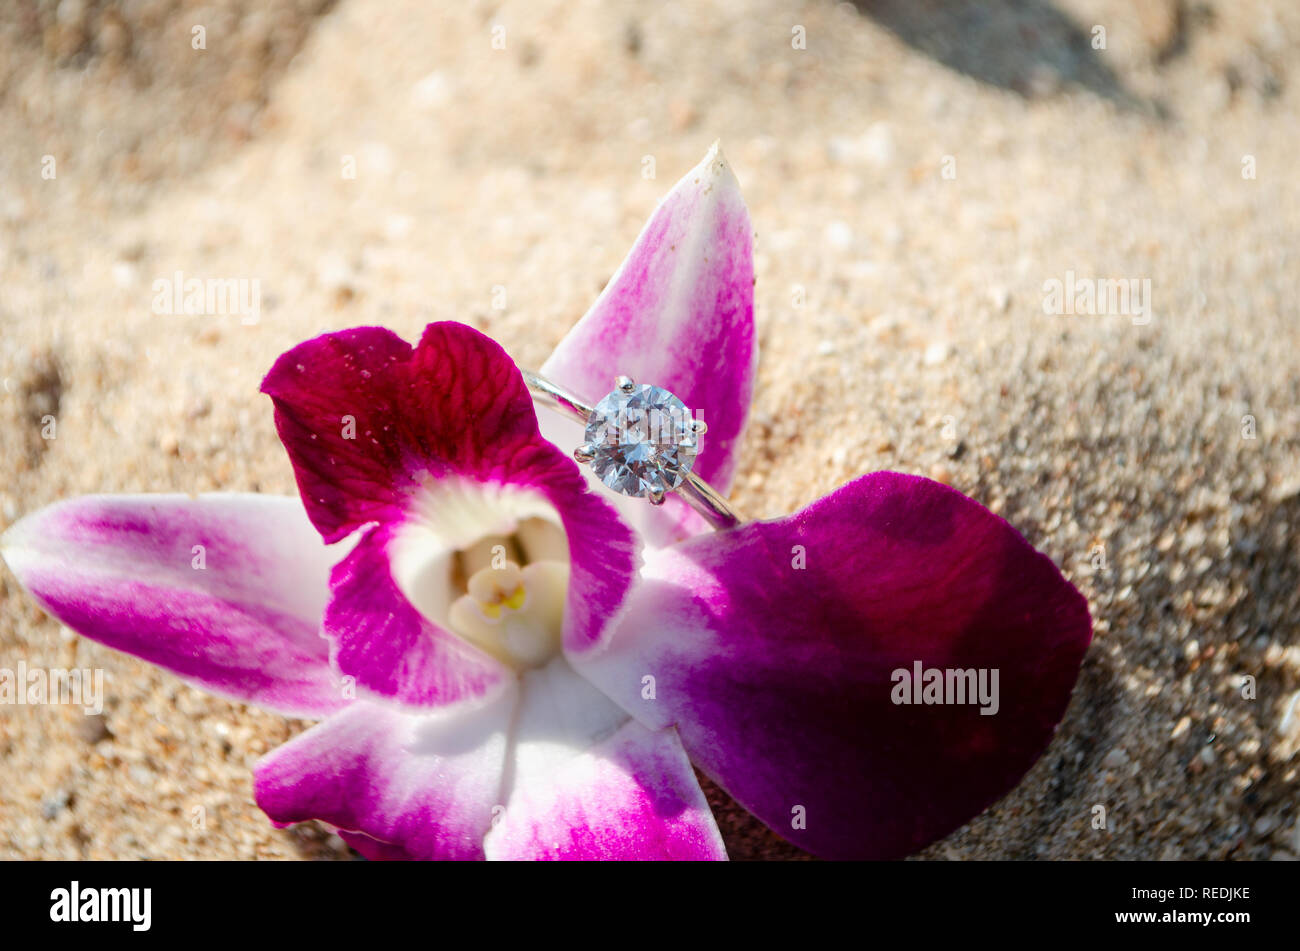 wedding ring on  Plumeria flower in the sand on the beach Stock Photo